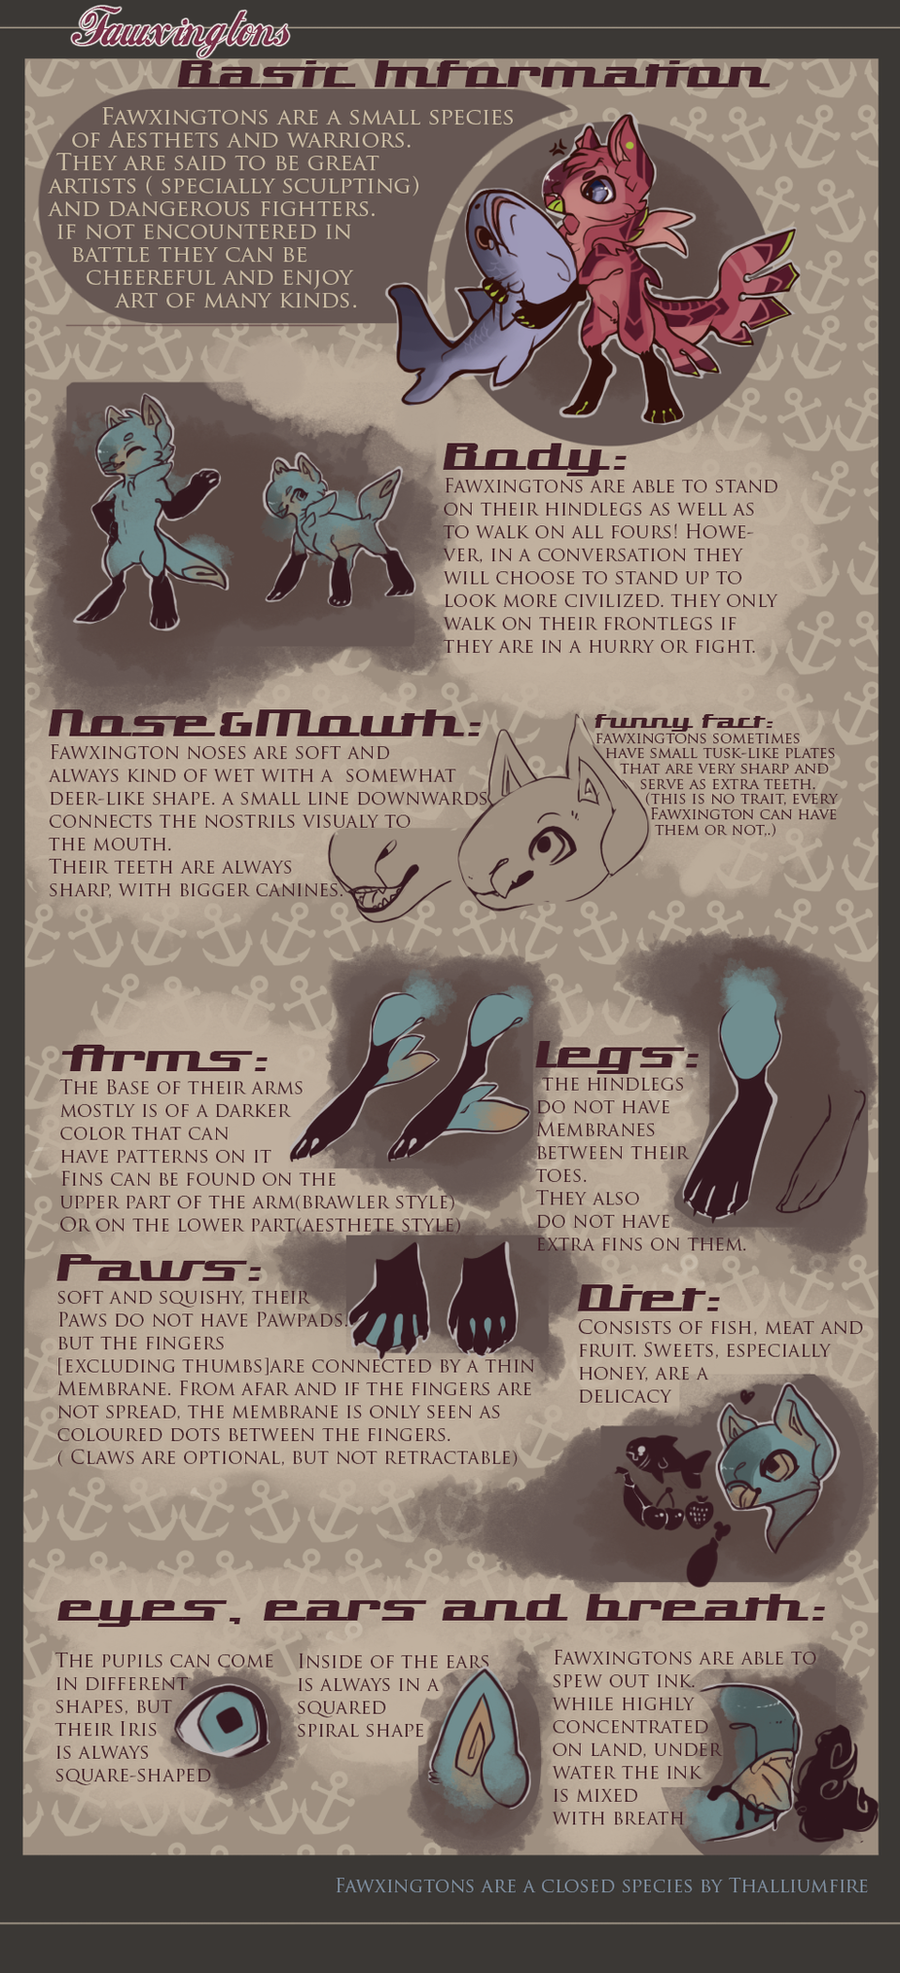 Introducing: Fawxingtons! (Infosheet) by Thalliumfire